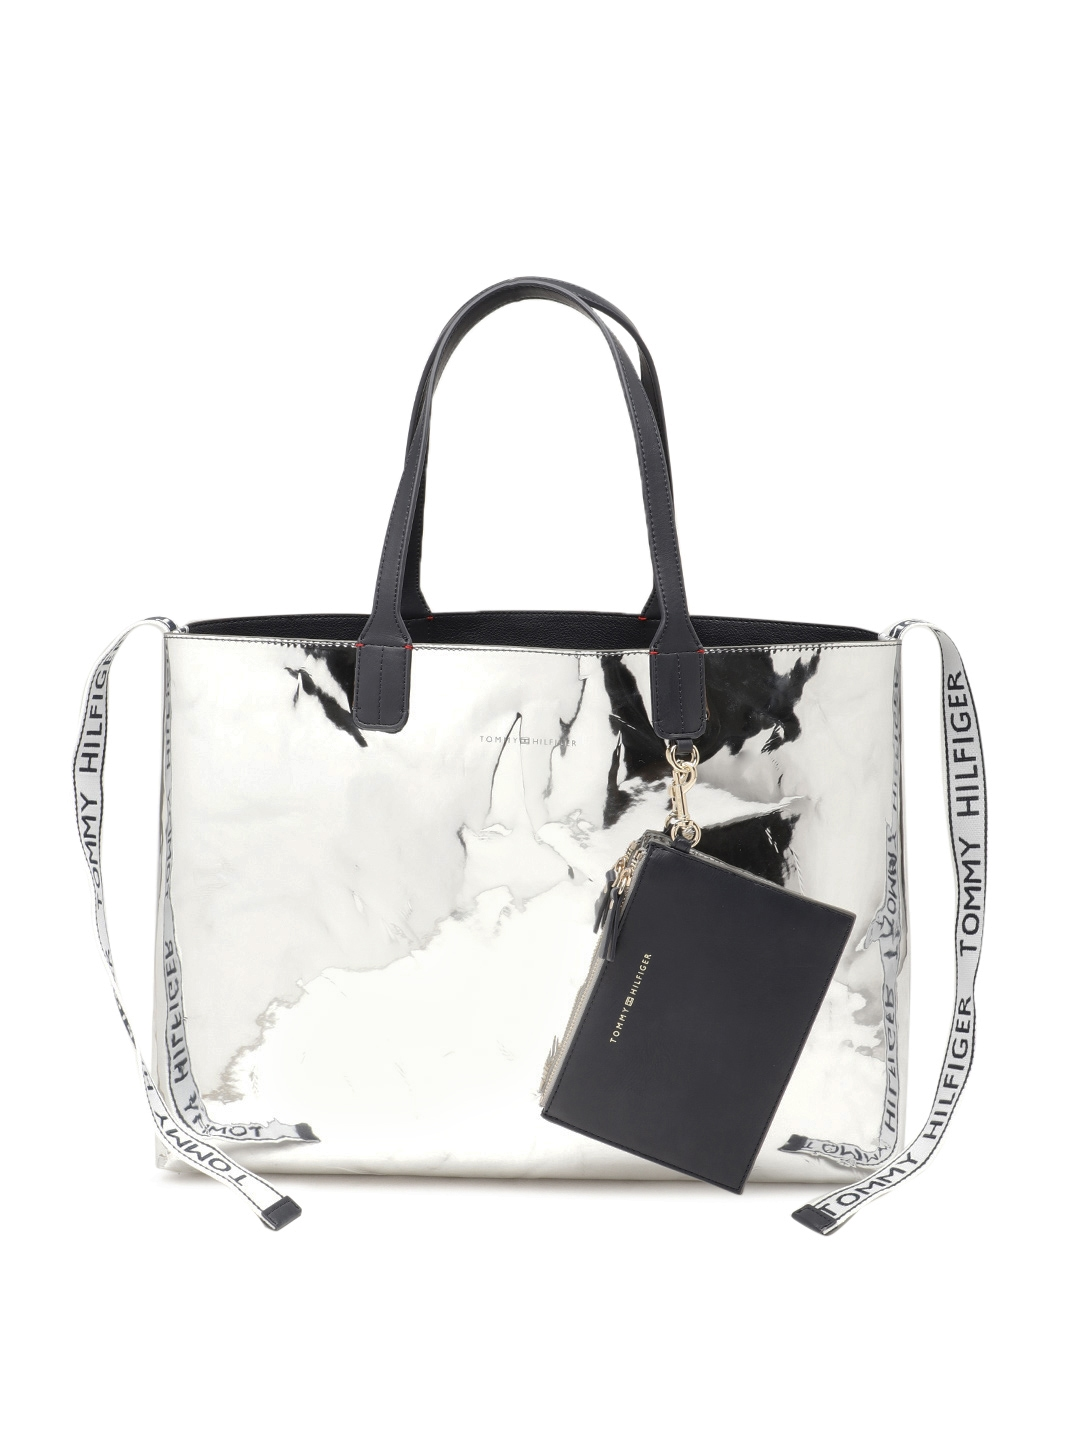 9ebe149f1 Buy Tommy Hilfiger Silver Toned Solid Tote Bag - Handbags for Women ...